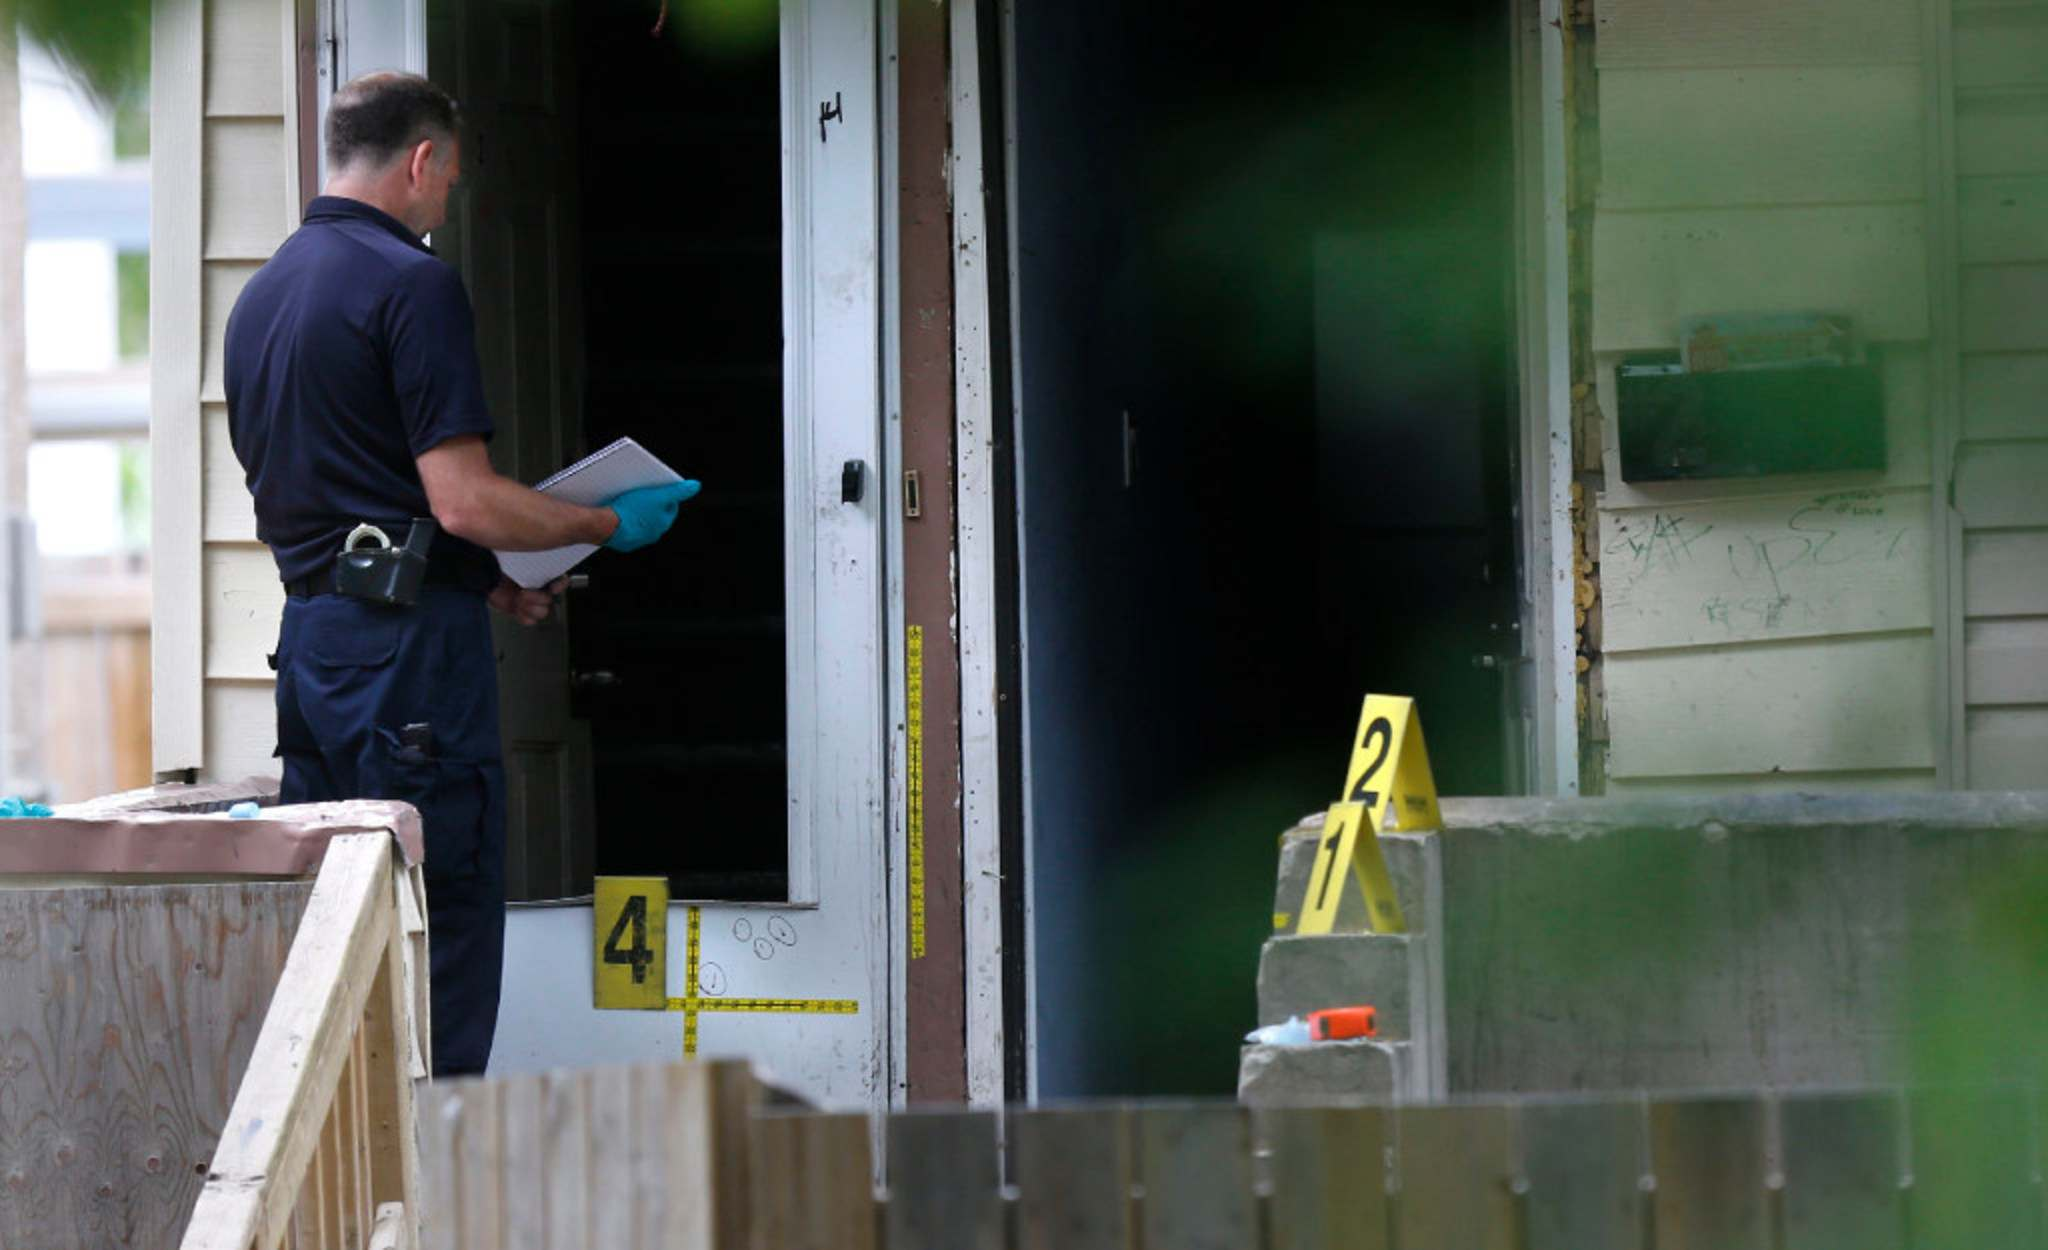 WAYNE GLOWACKI / WINNIPEG FREE PRESS</p><p>Winnipeg Police investigate the scene at 570 Spence St. Saturday after a 37-year-old woman was stabbed to death.</p>